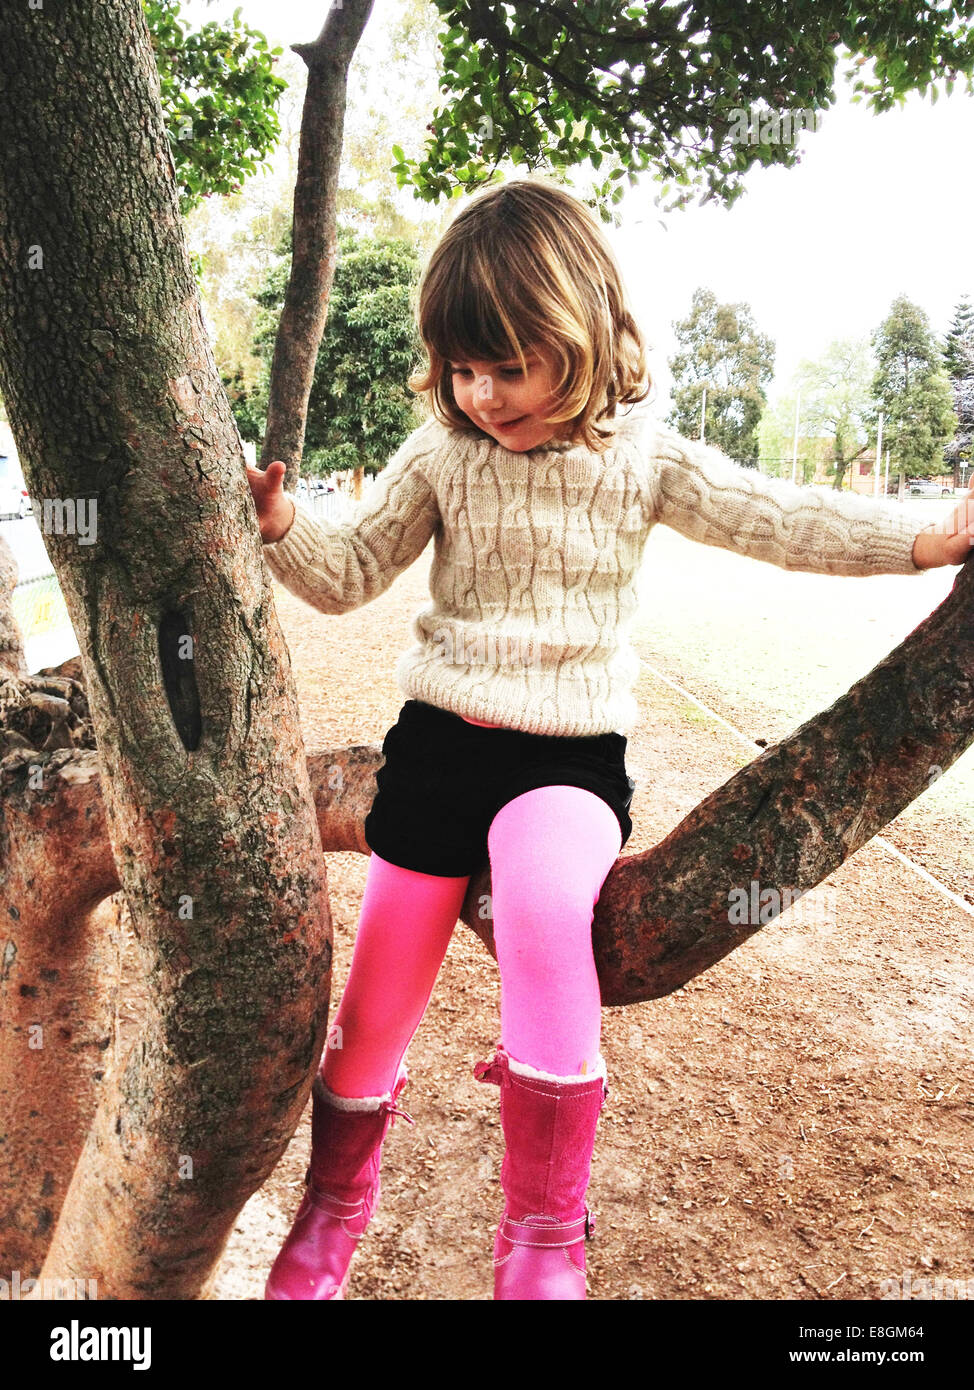 Girl (4-5) wearing pink boots climbing tree - Stock Image